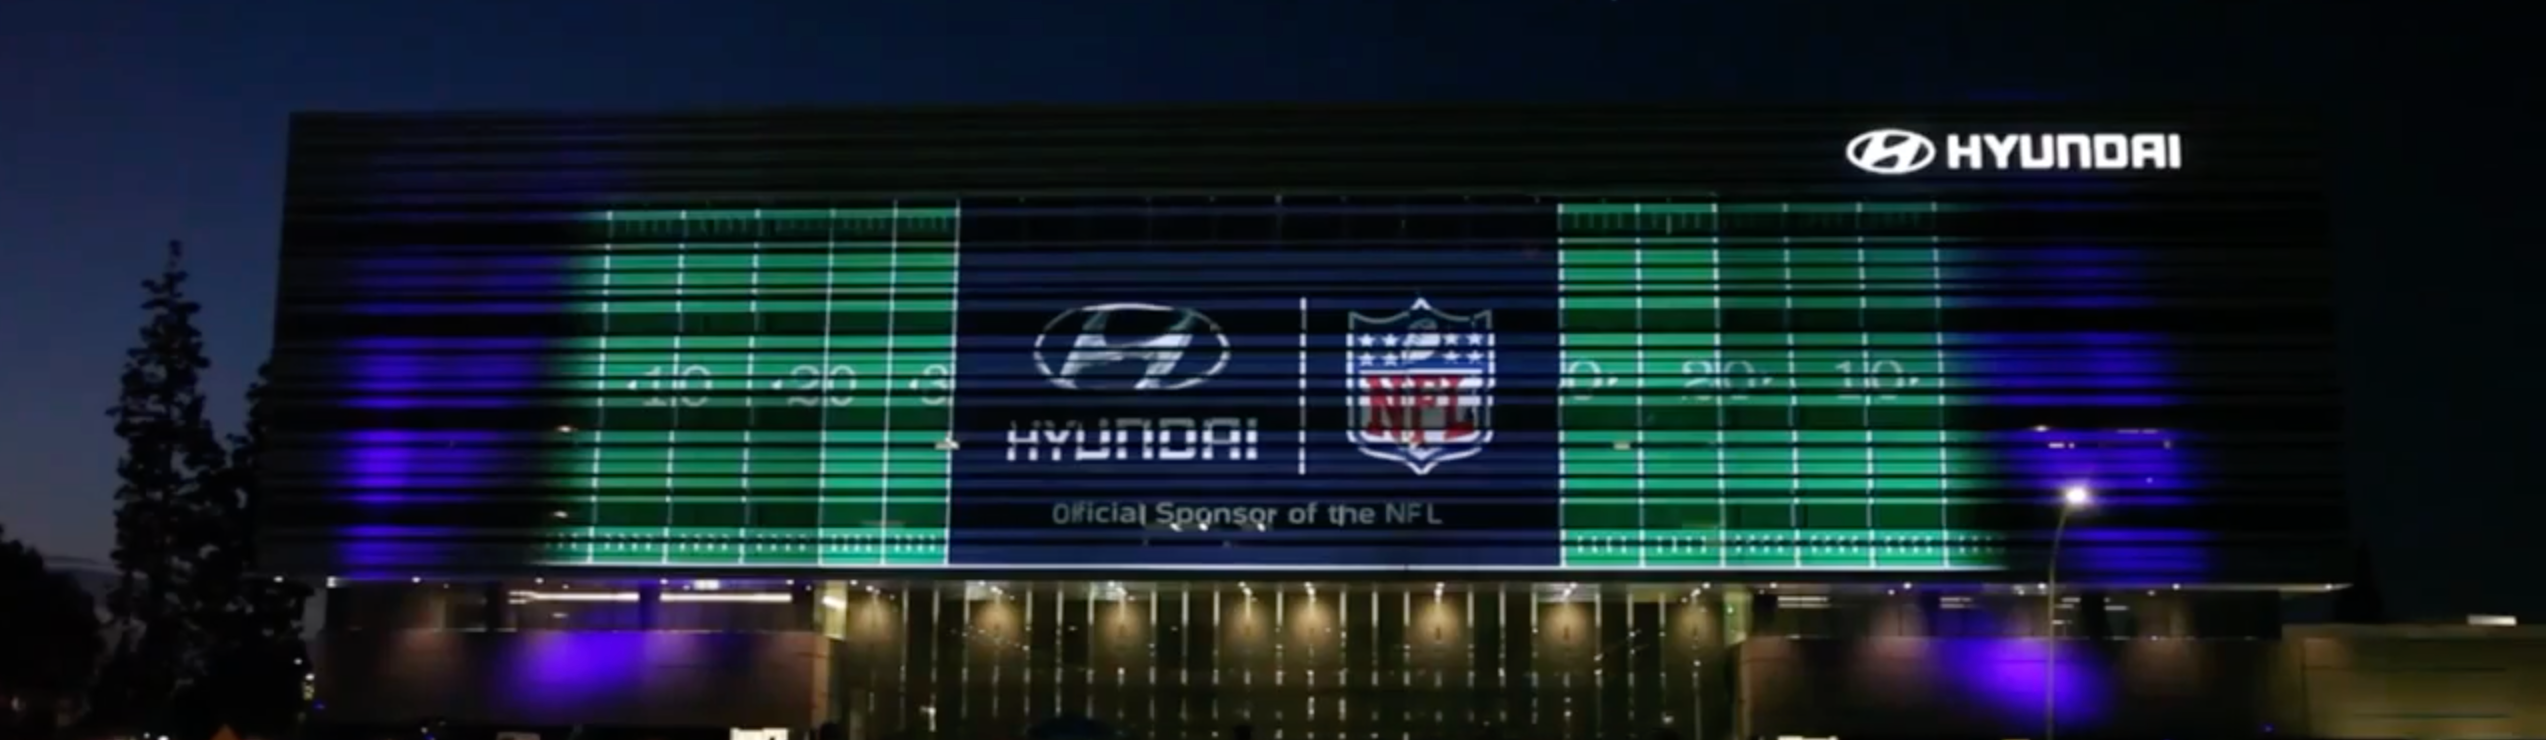 Hyundai Projection Mapping Project for the NFL